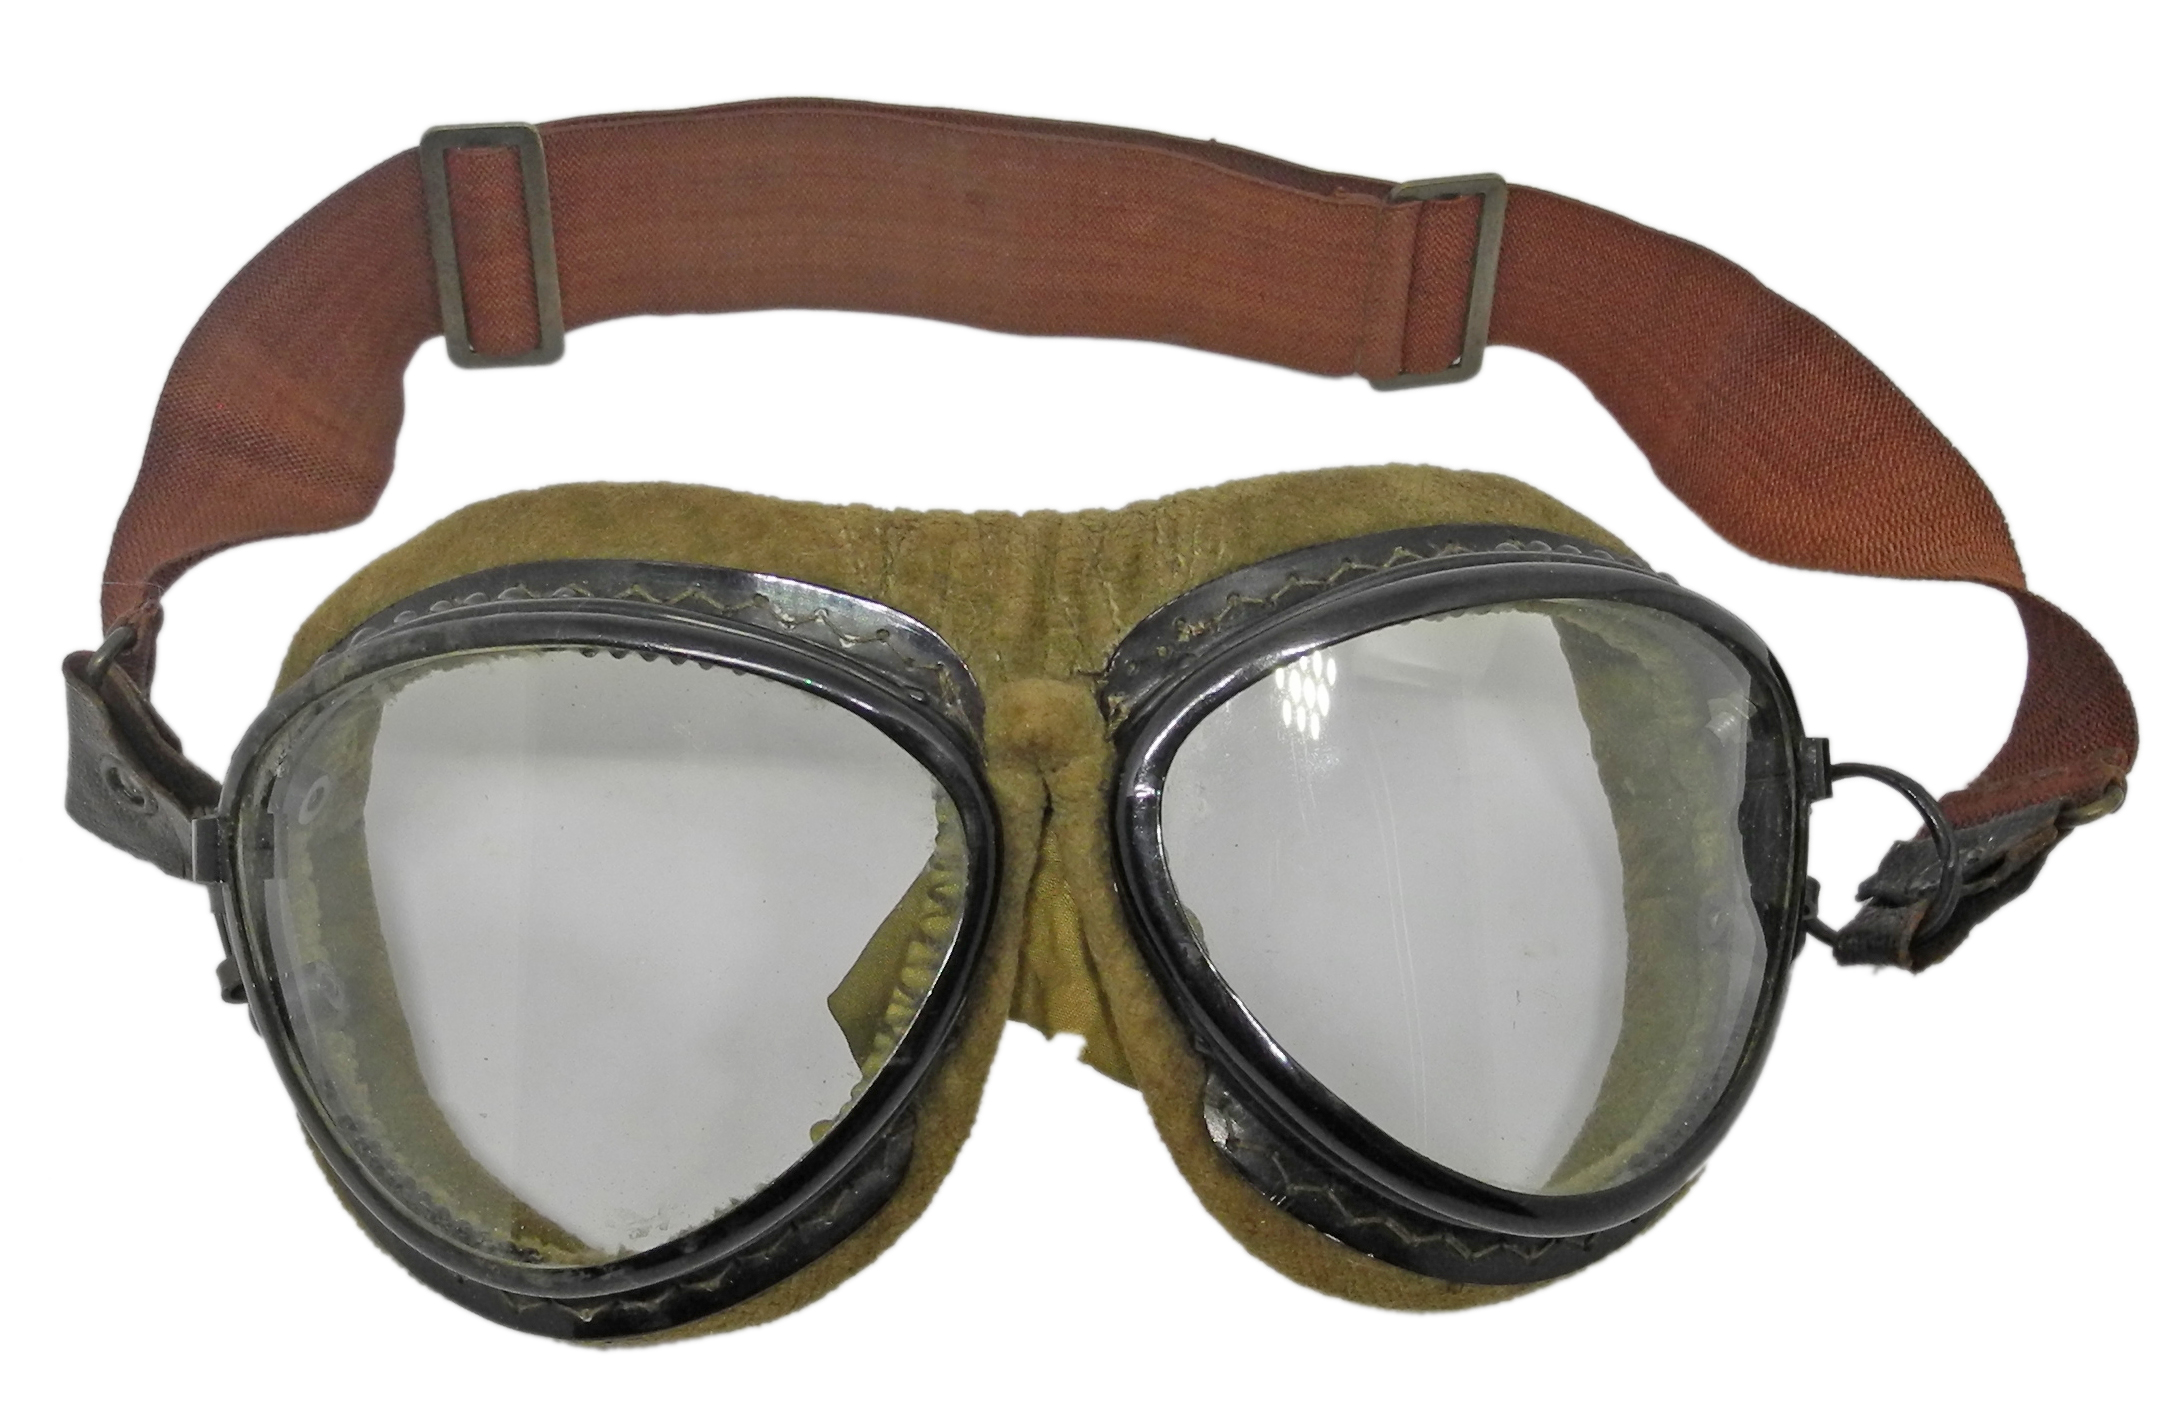 Japanese Army flying goggle